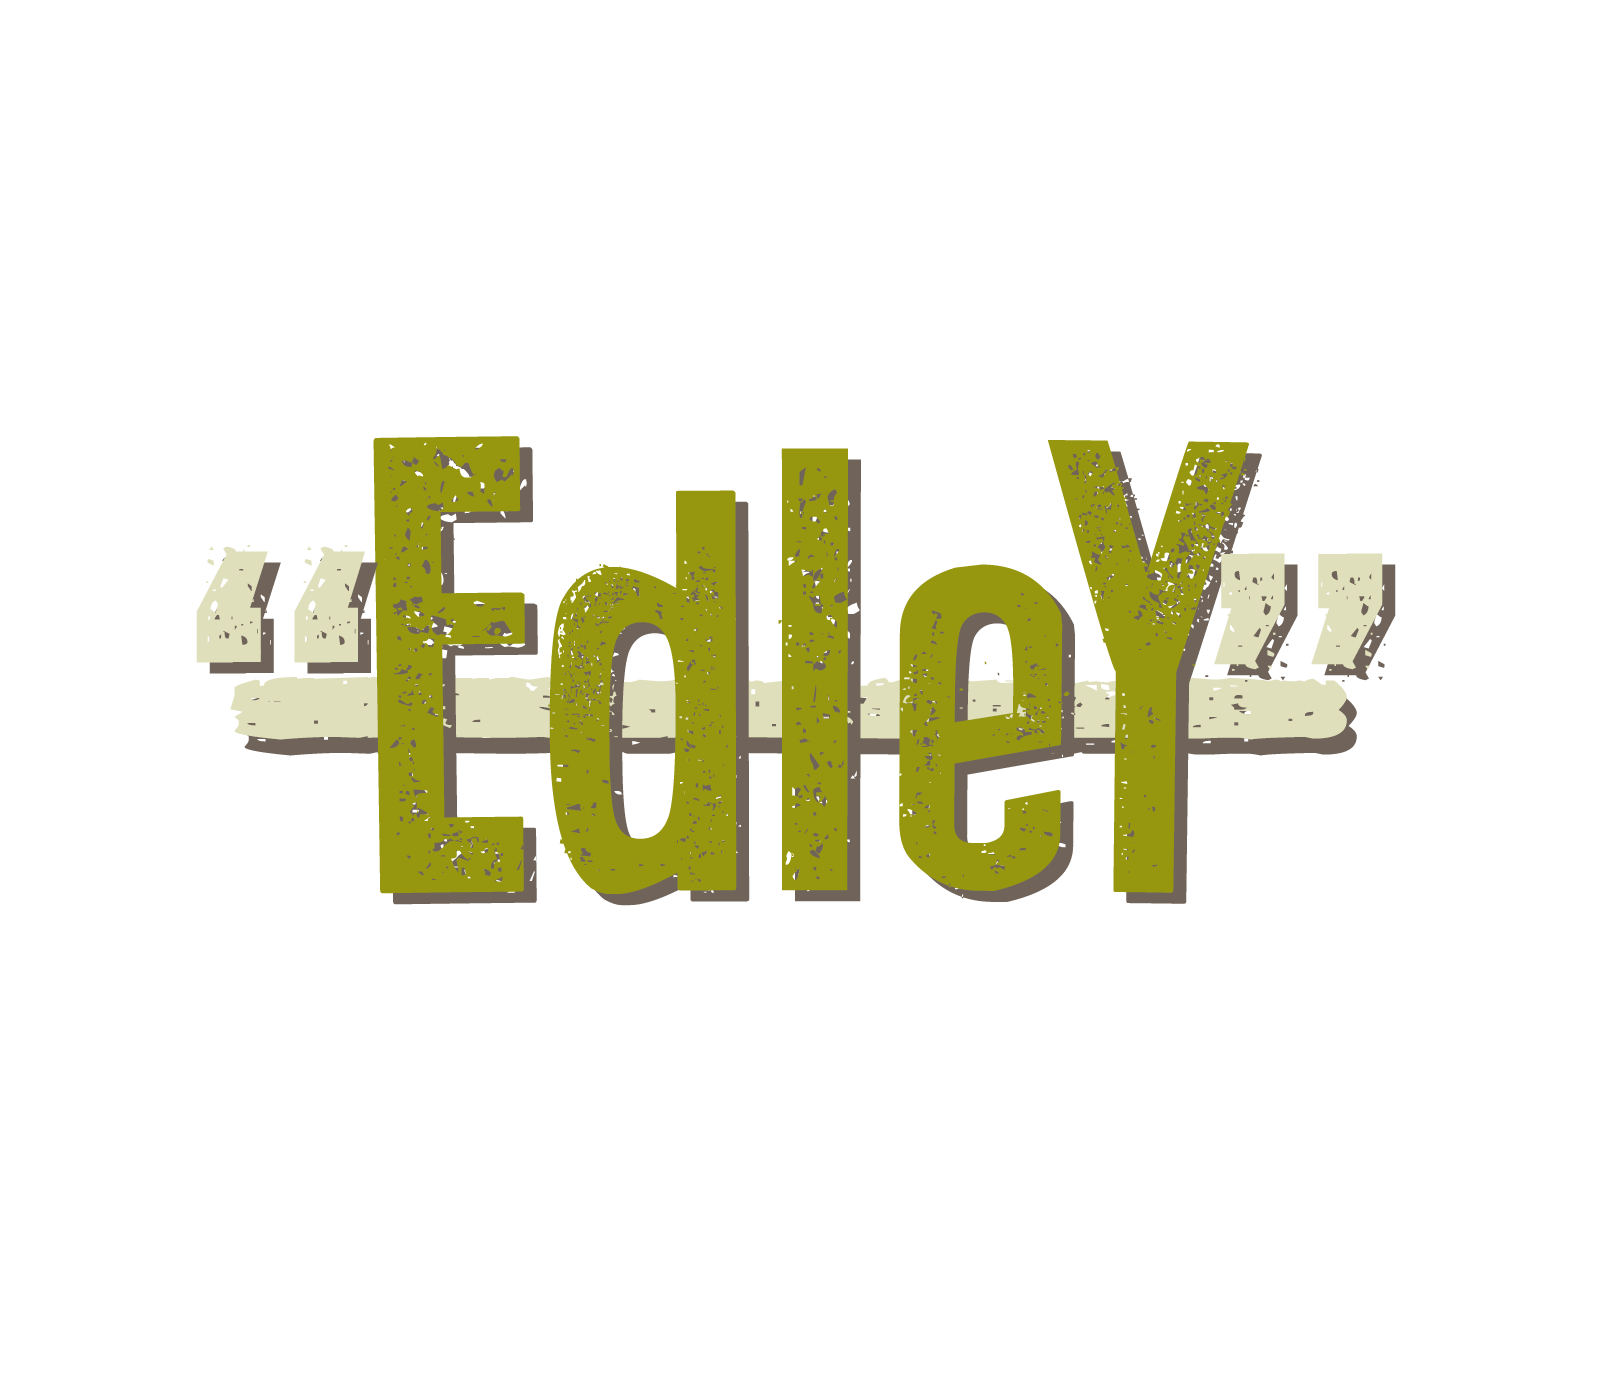 Edley-larger